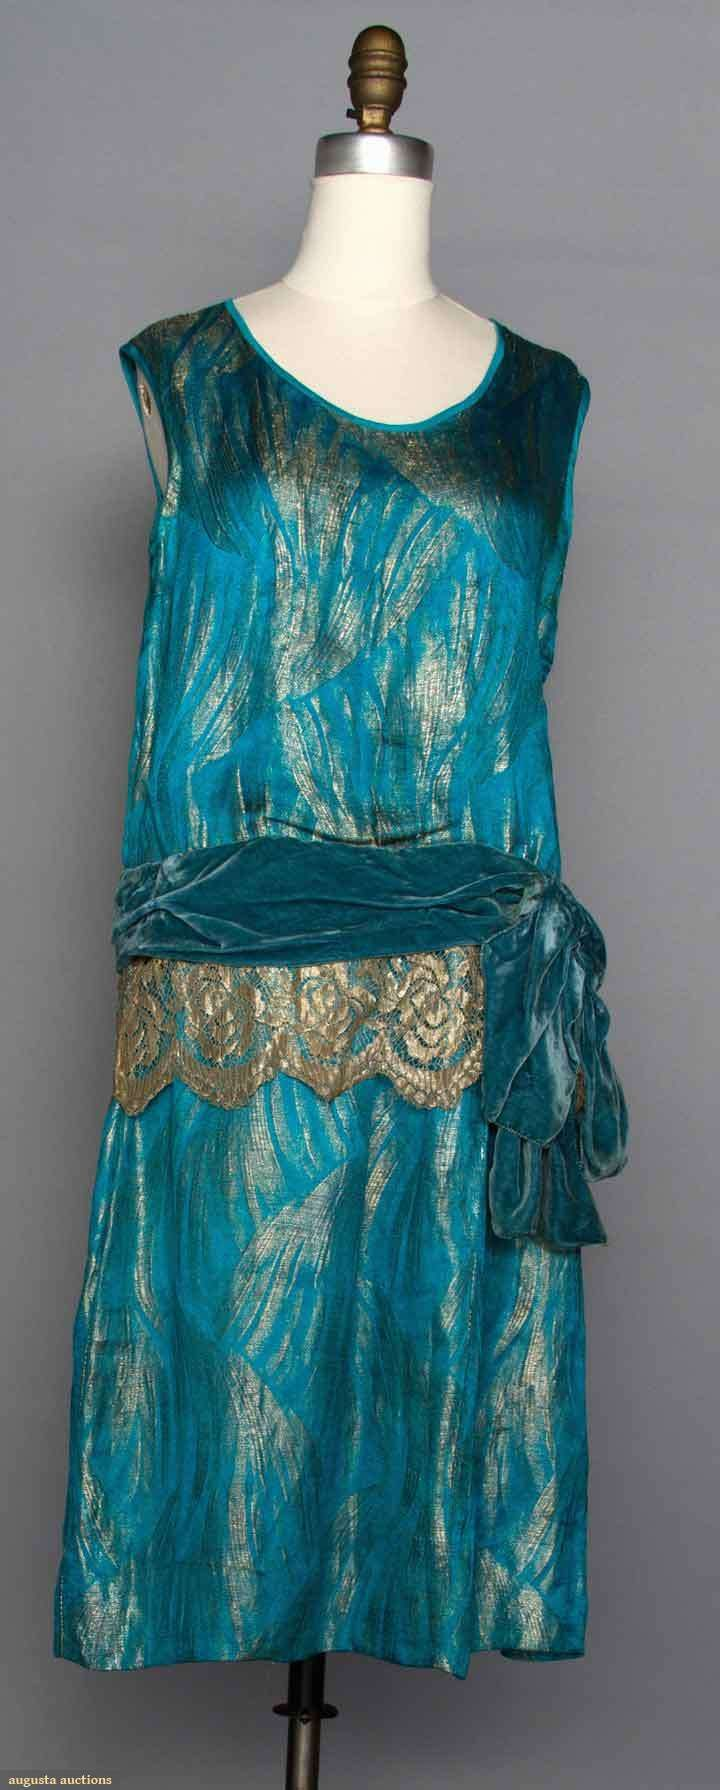 TURQUOISE LAME DRESS, 1920s~ Turquoise silk satin w/ gold frond ...